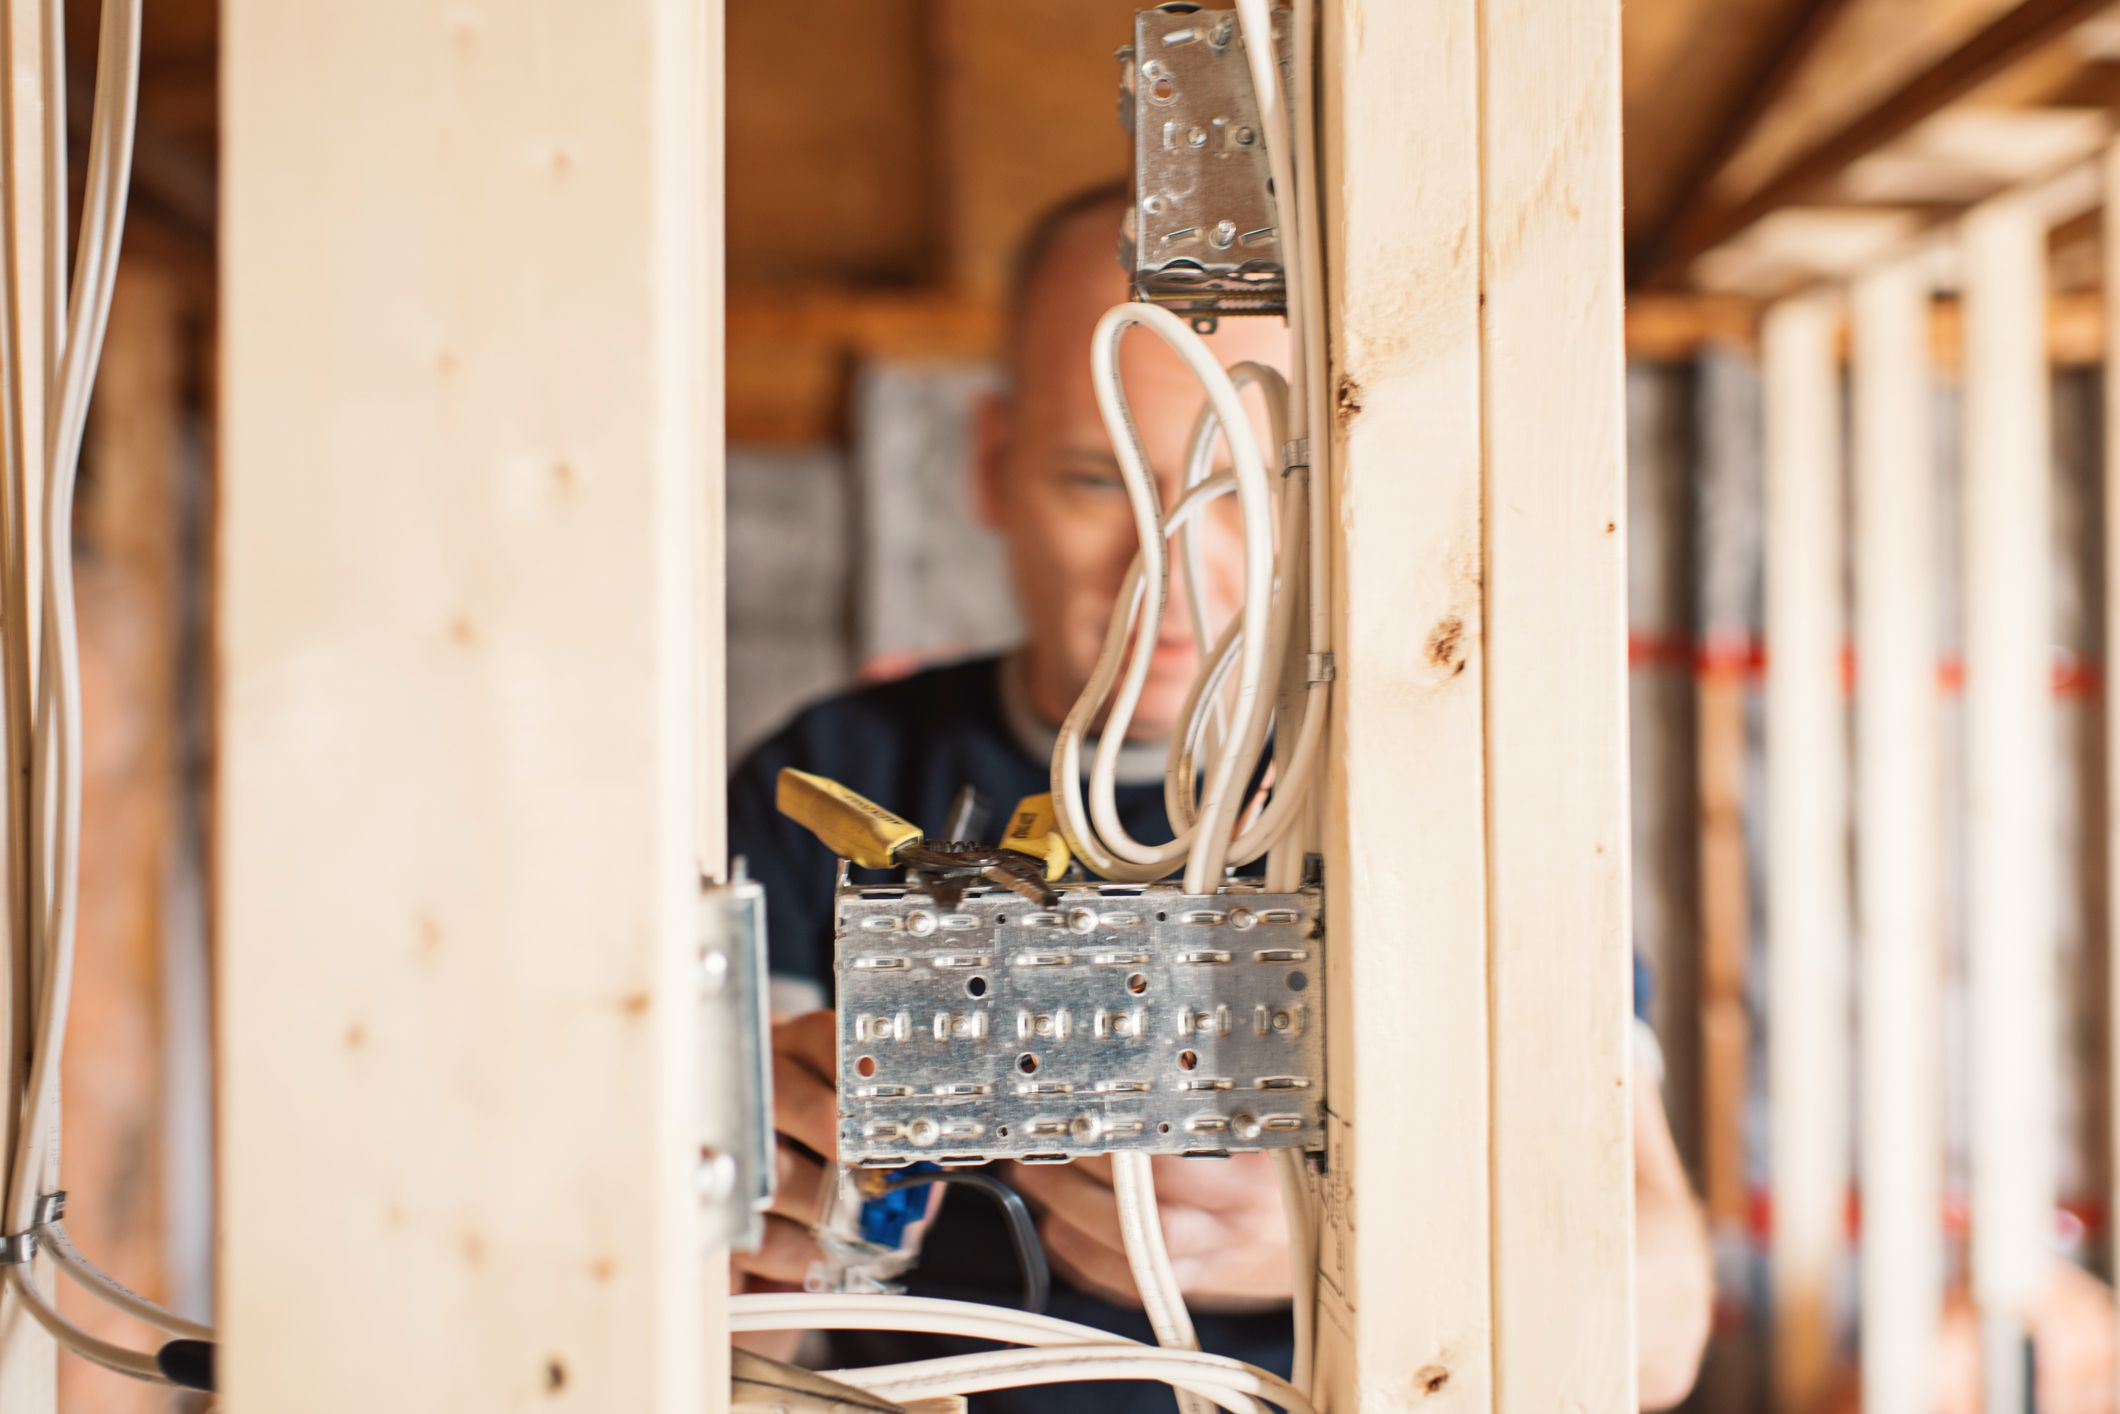 Electrical installations requiring no junction boxes what are the requirements for electrical inspector checkpoints arubaitofo Choice Image